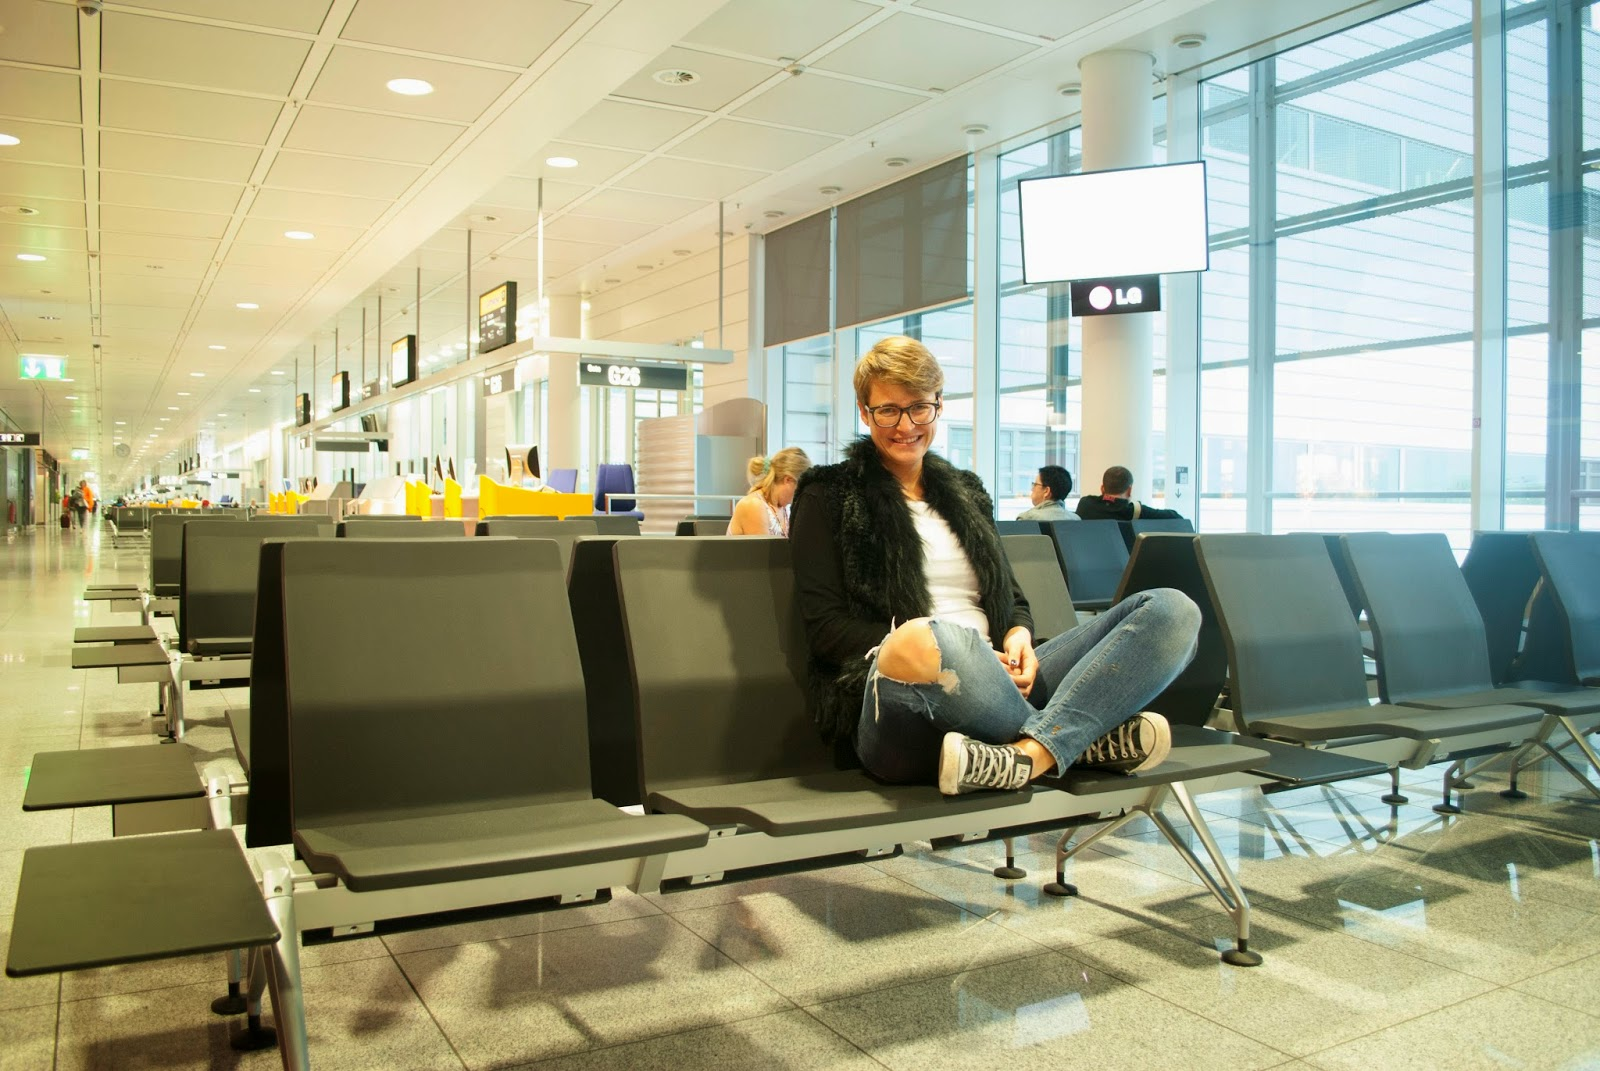 OOTD Travel to Fashion Blogger Café Airport Travel Outfit Flight Lufthansa Berlin Mercedes Benz Fashion Week